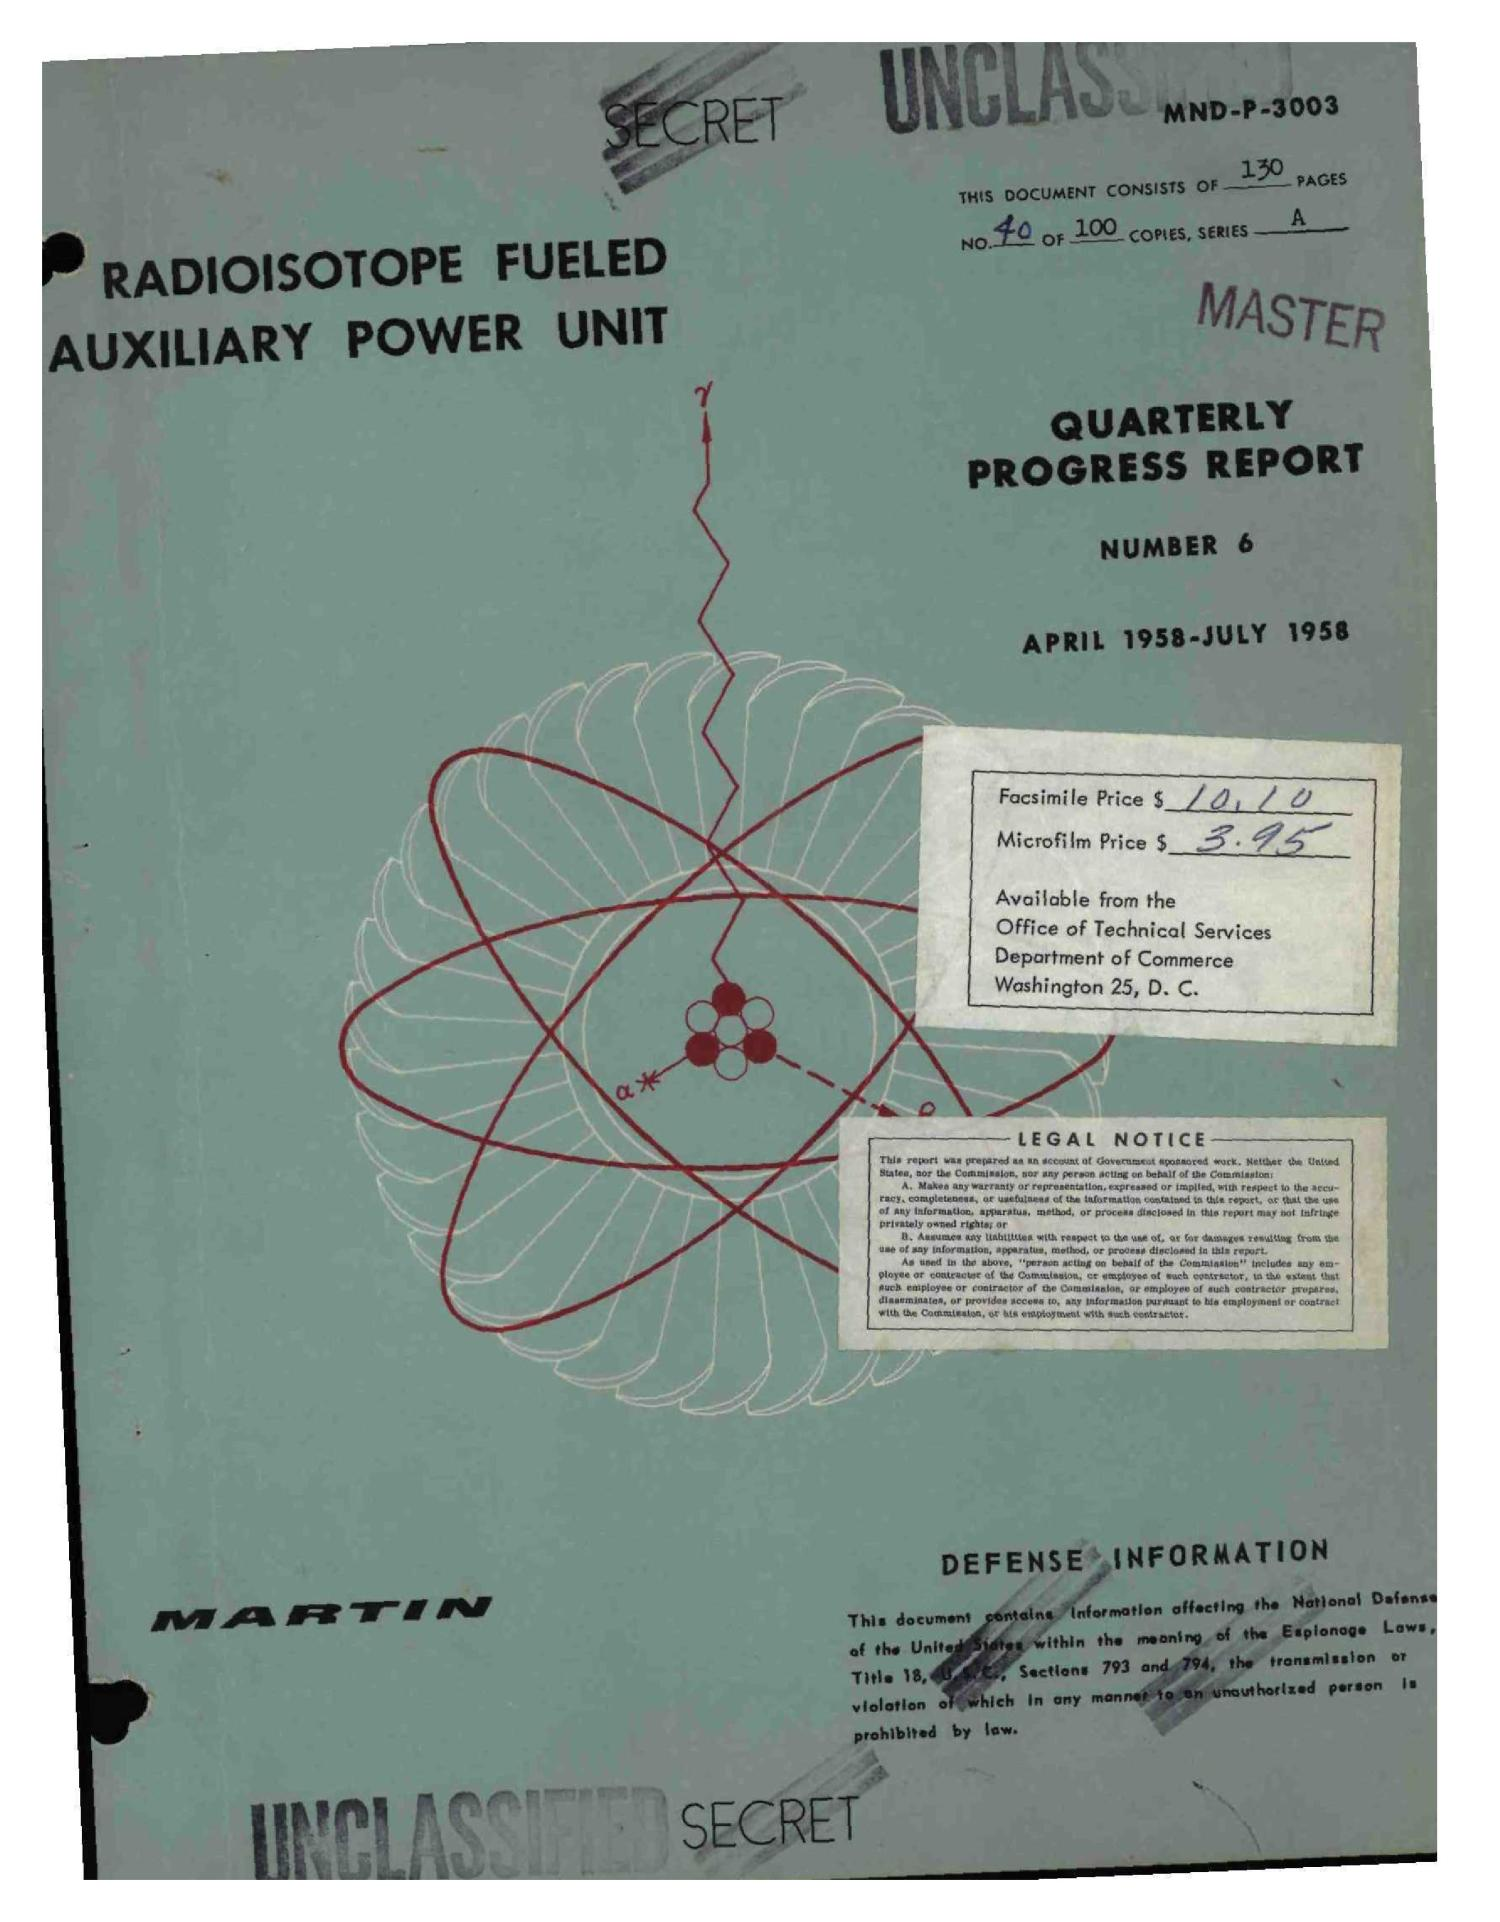 RADIOISOTOPE FUELED AUXILIARY POWER UNIT. Quarterly Progress Report No. 6, April 1958-July 1958                                                                                                      [Sequence #]: 1 of 134